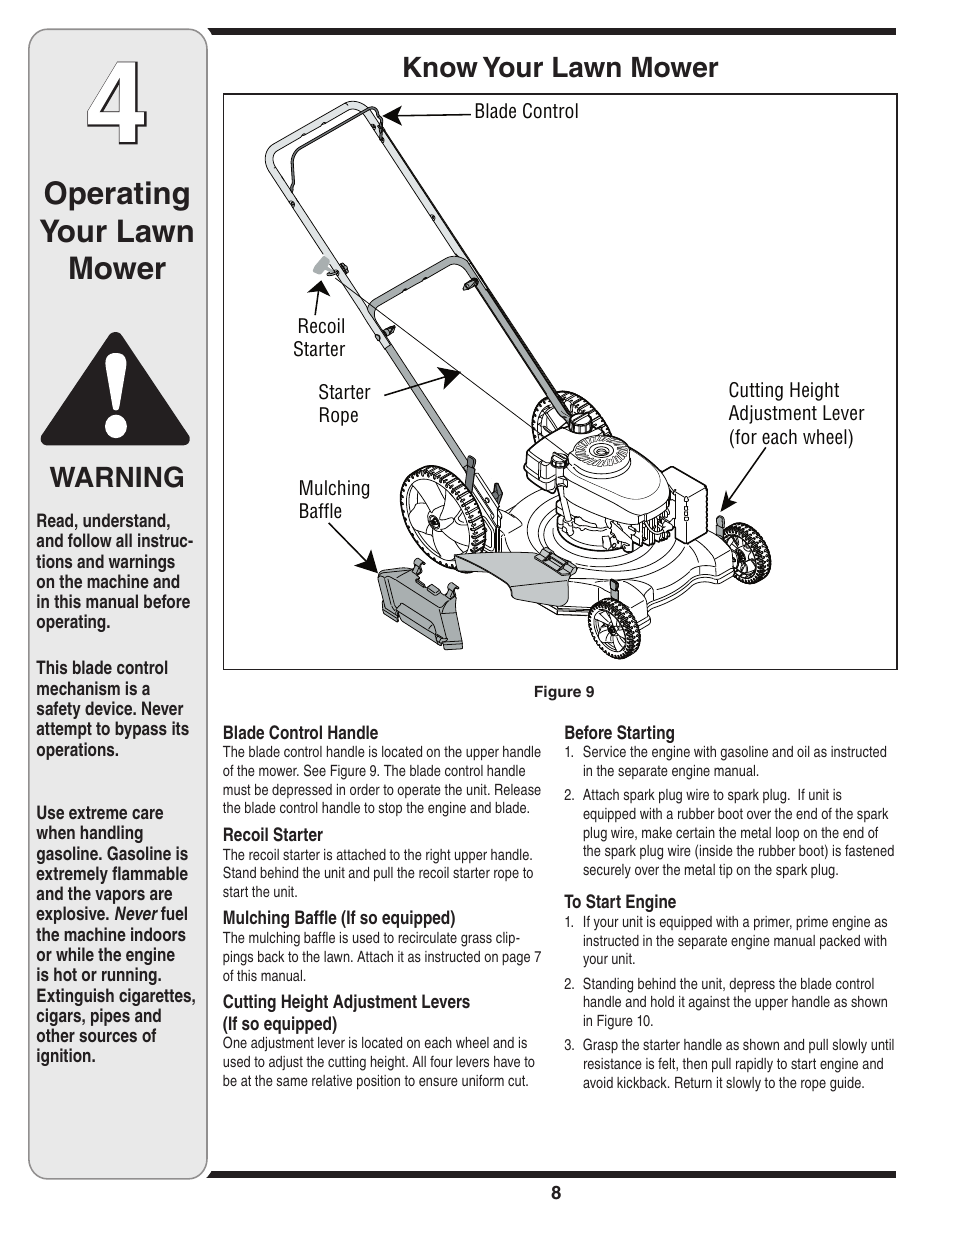 Operating your lawn mower, Know your lawn mower, Warning